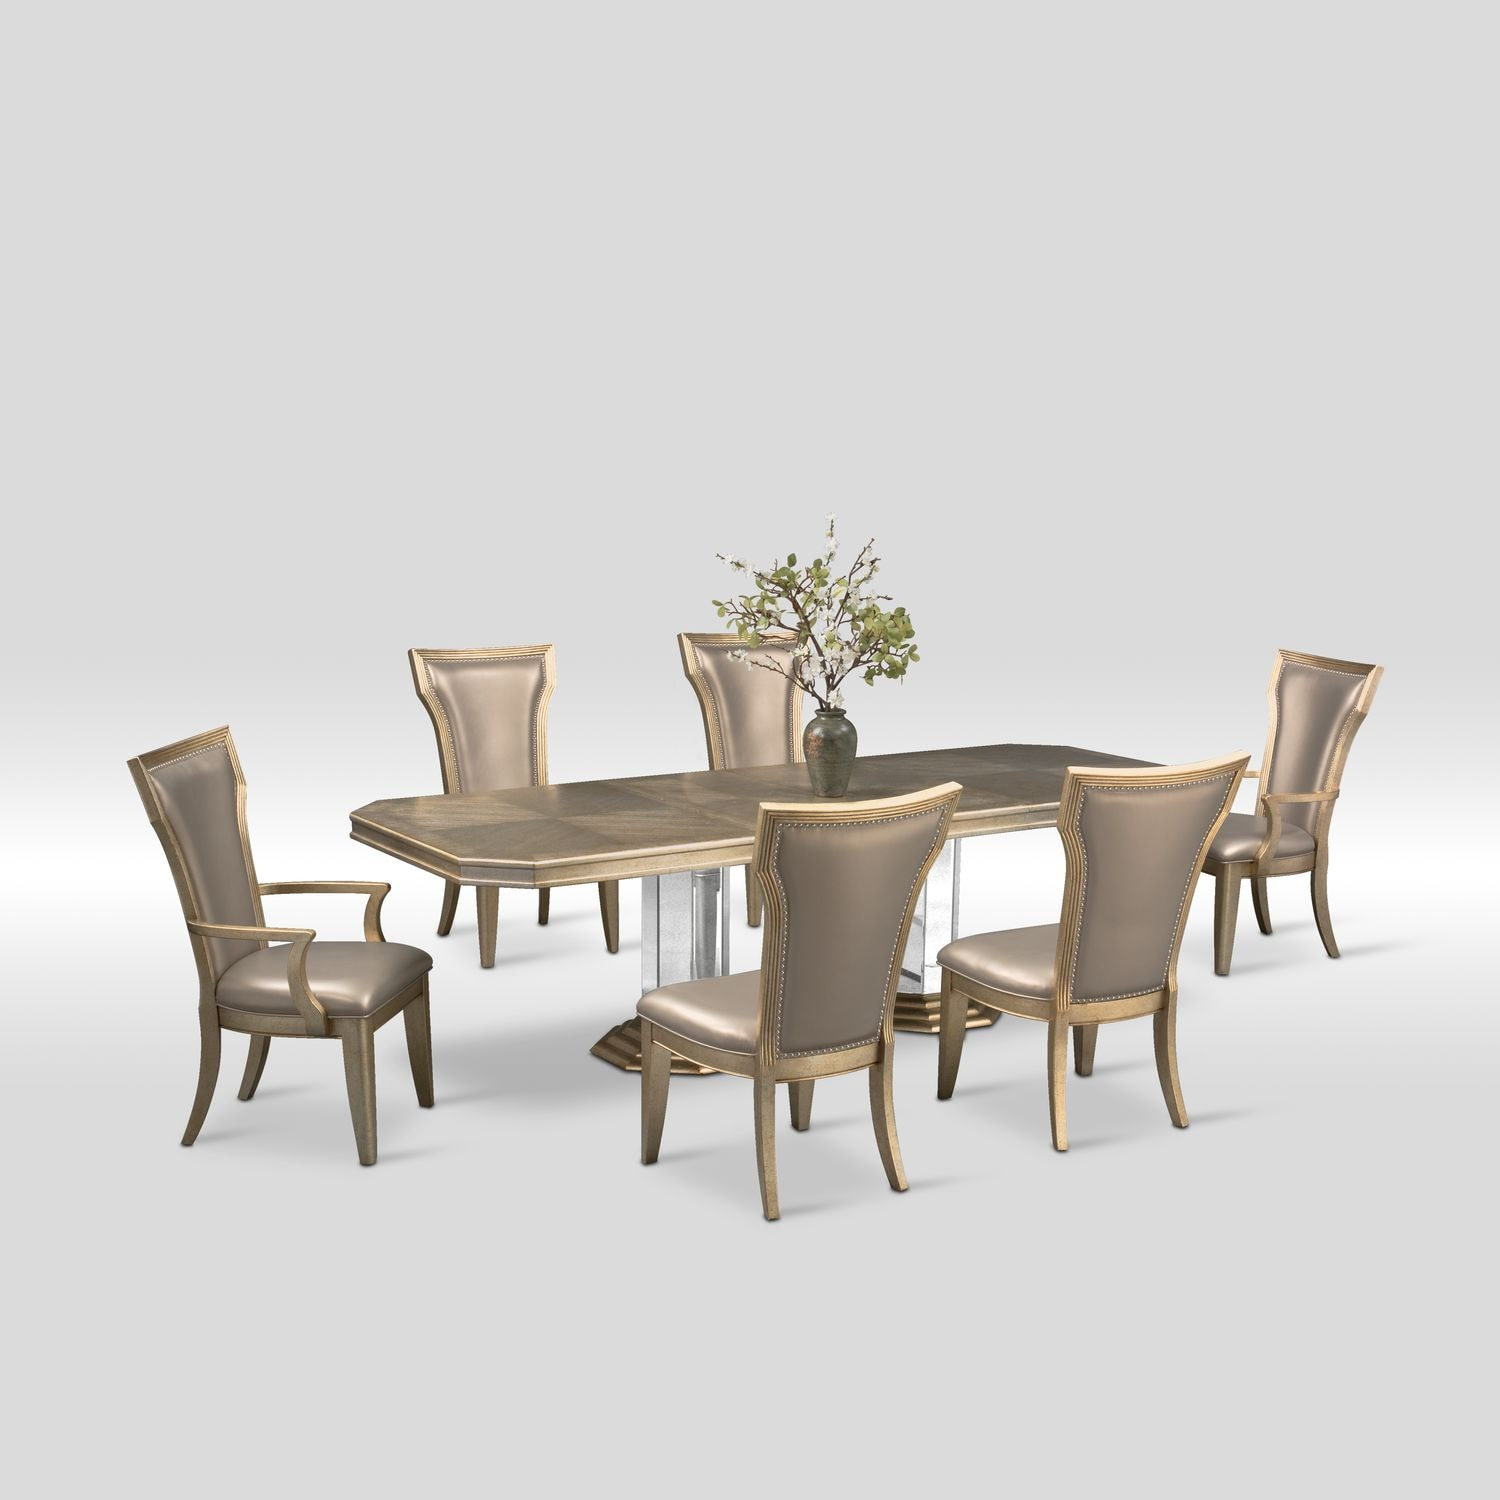 Dining Room Table For 2: Angelina Double-Pedestal Table, Two Arm Chairs And 4 Side